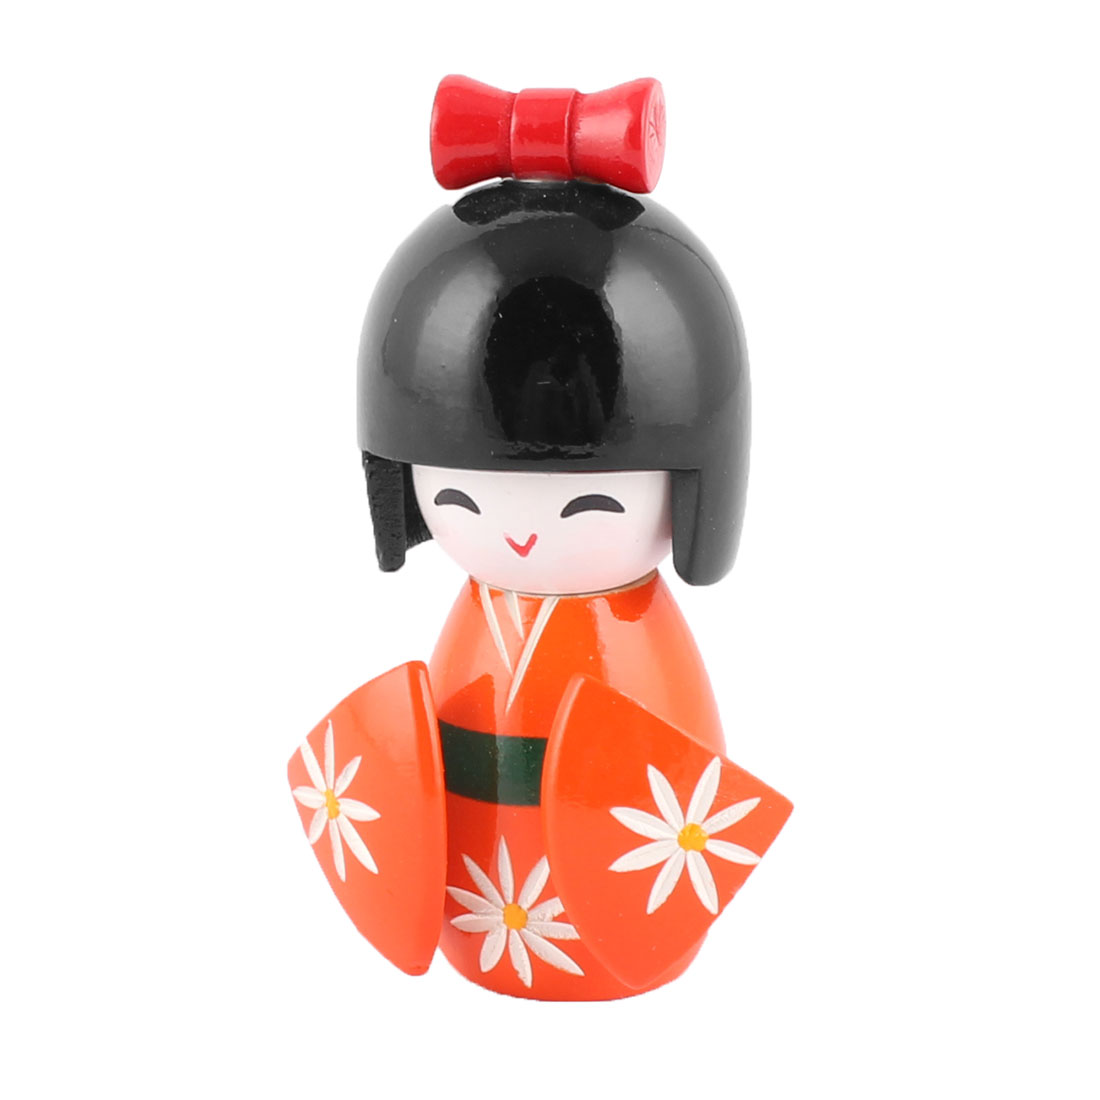 Family Wood Japenese Kokeshi Doll Desktop Ornament Collection Orange 11cm Height